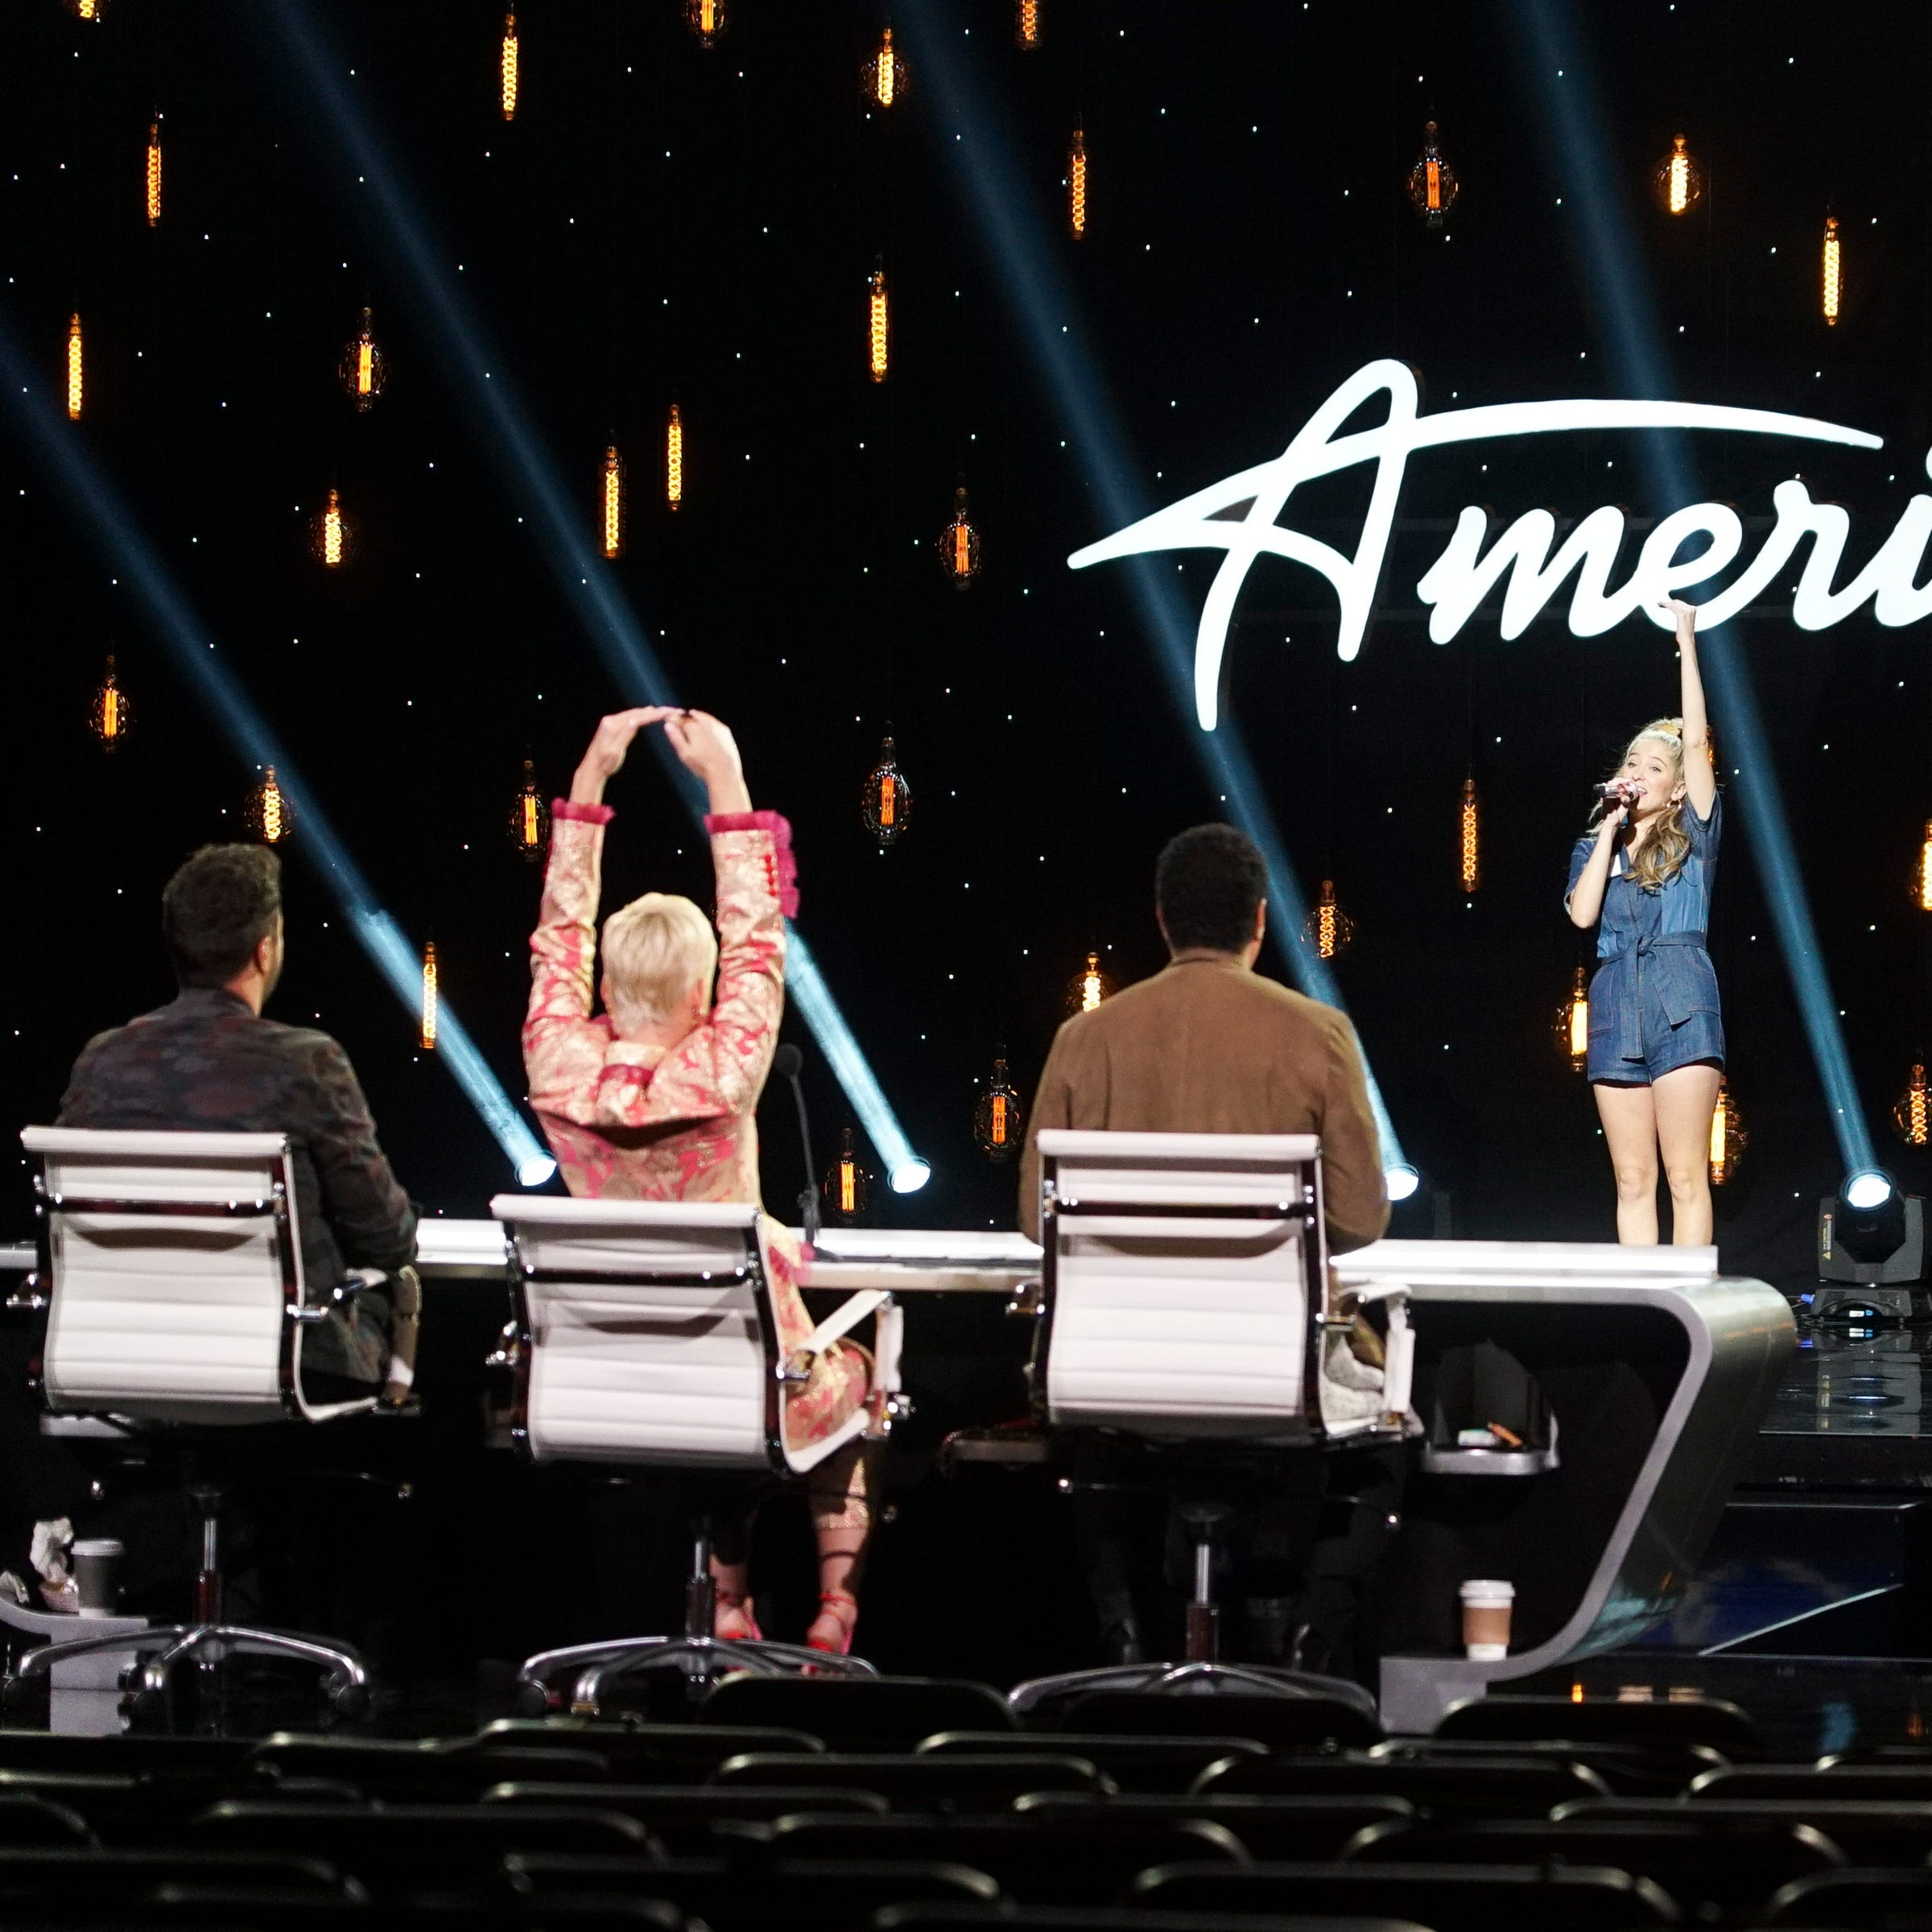 Delaware's Margie Mays sings a Sam Smith song on 'American Idol,' passes to next round